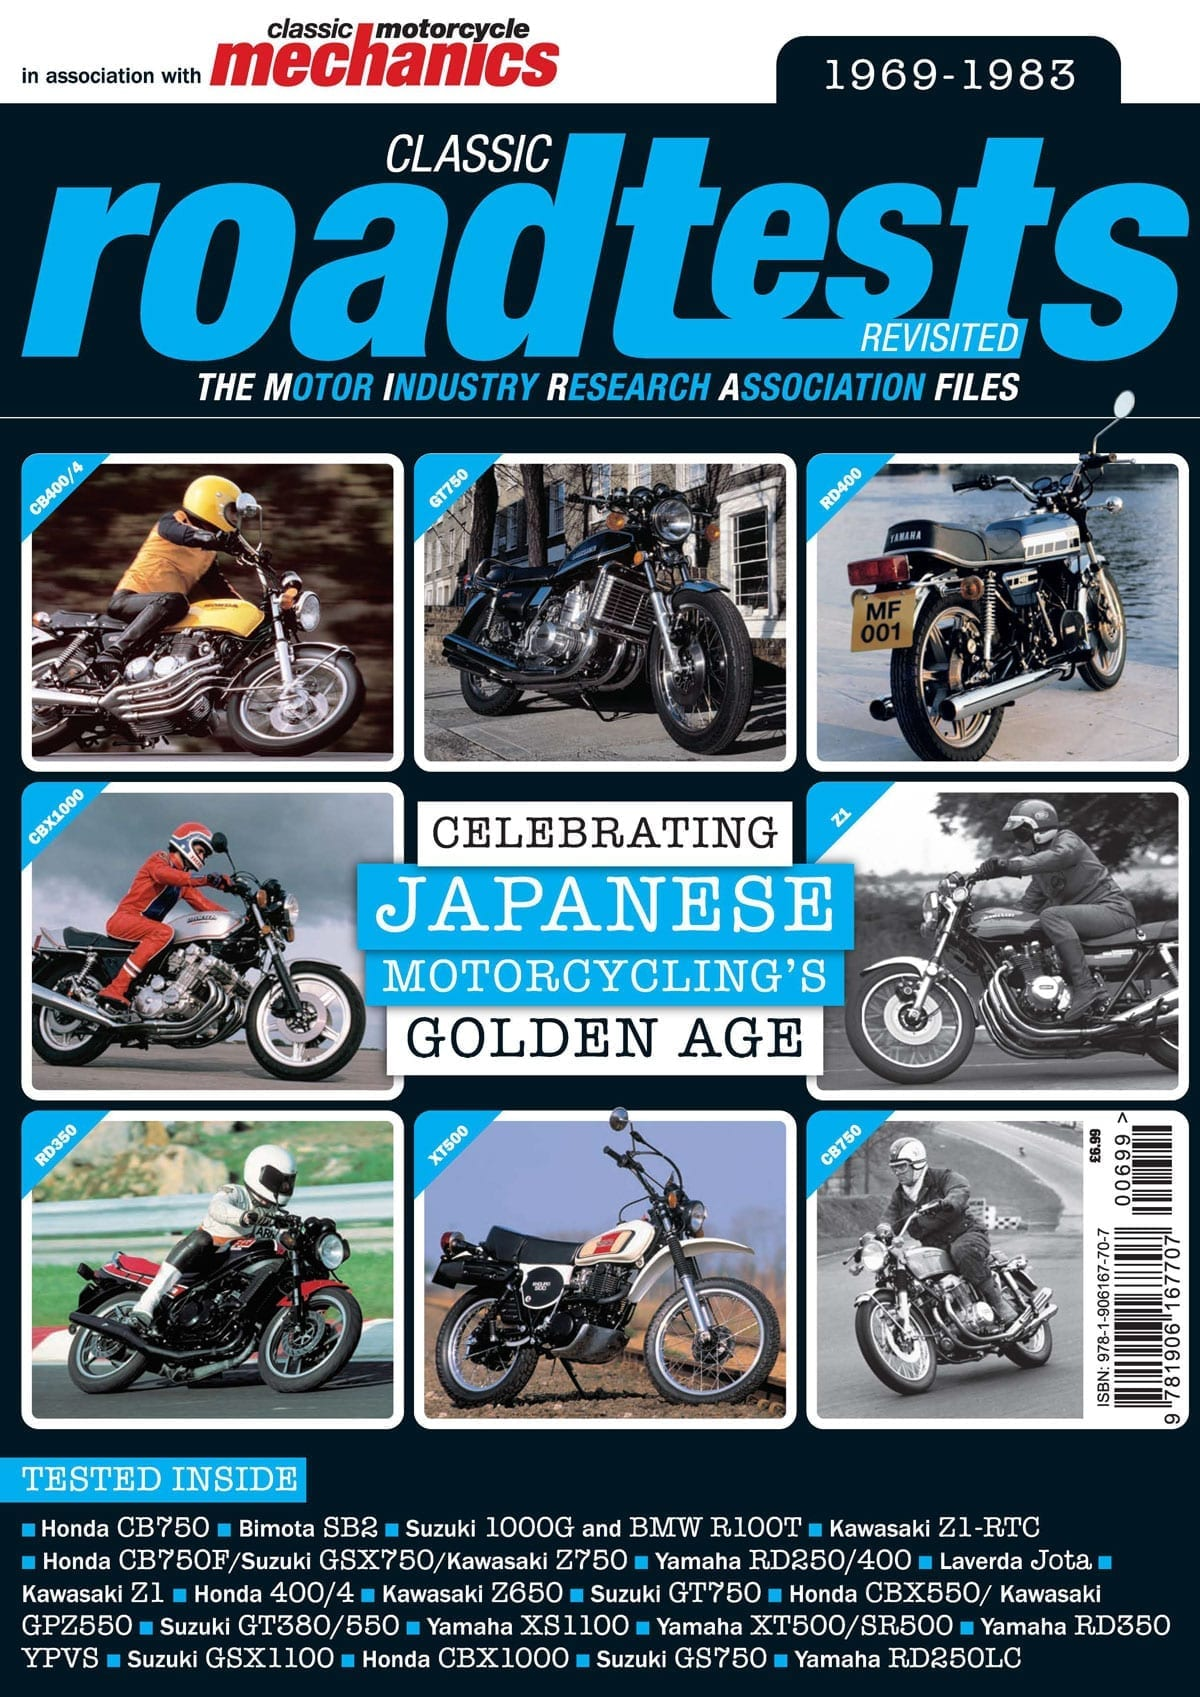 Classic Roadtests Revisted – Celebrating Japanese Motorcycling's Golden Age